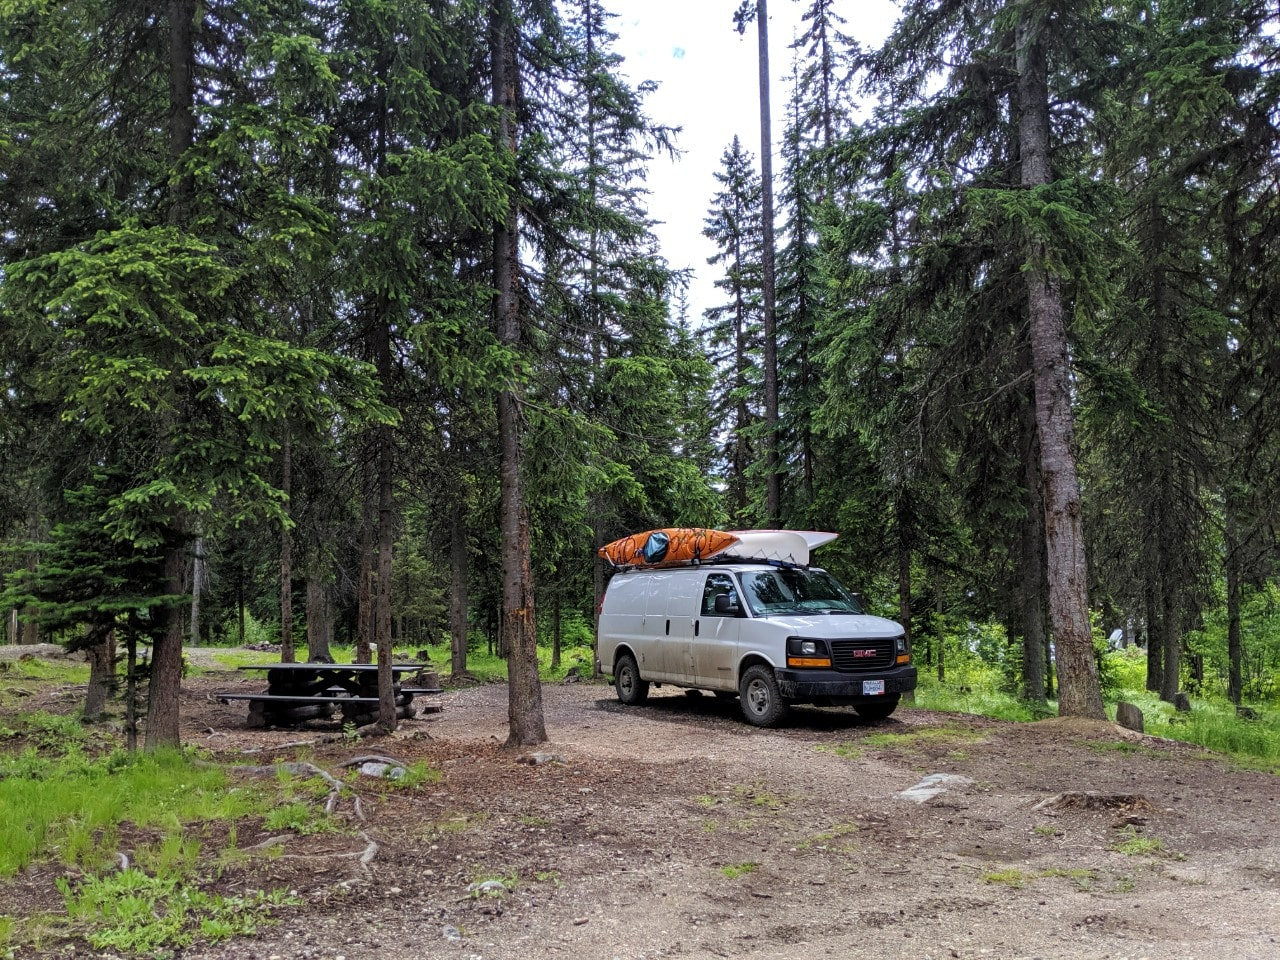 White van parked next to picnic table at free camping area in British Columbia